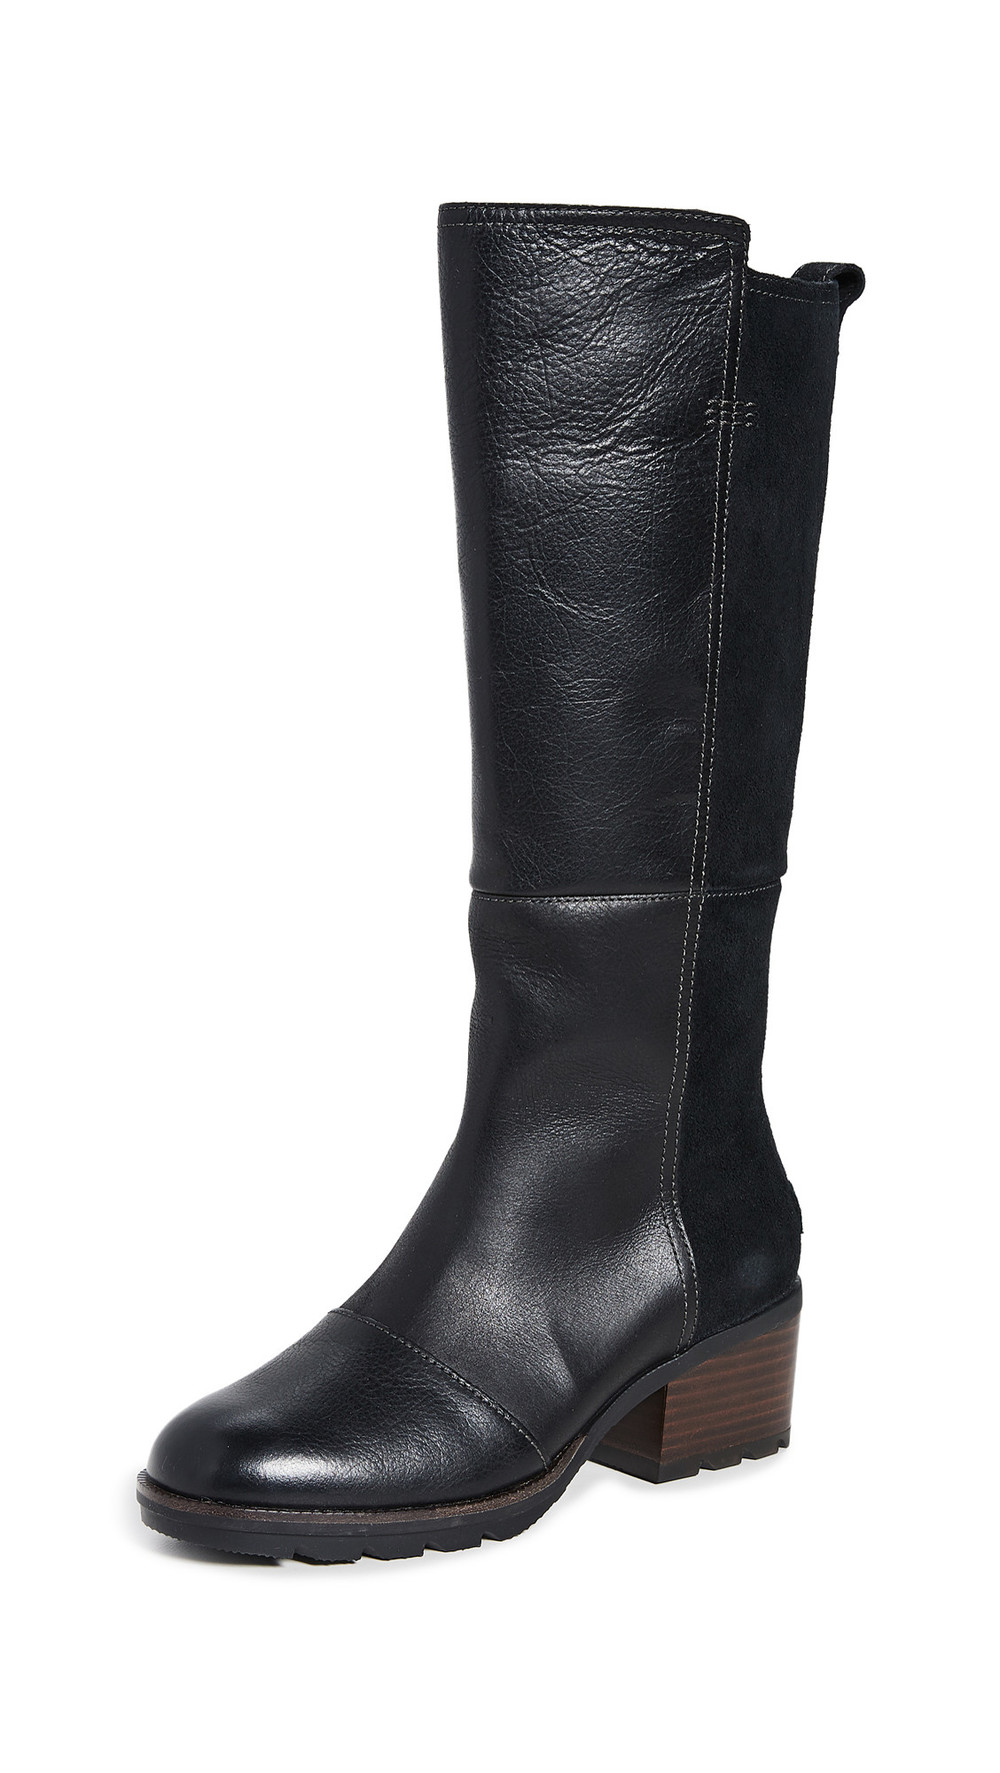 Sorel Cate Tall Boots in black